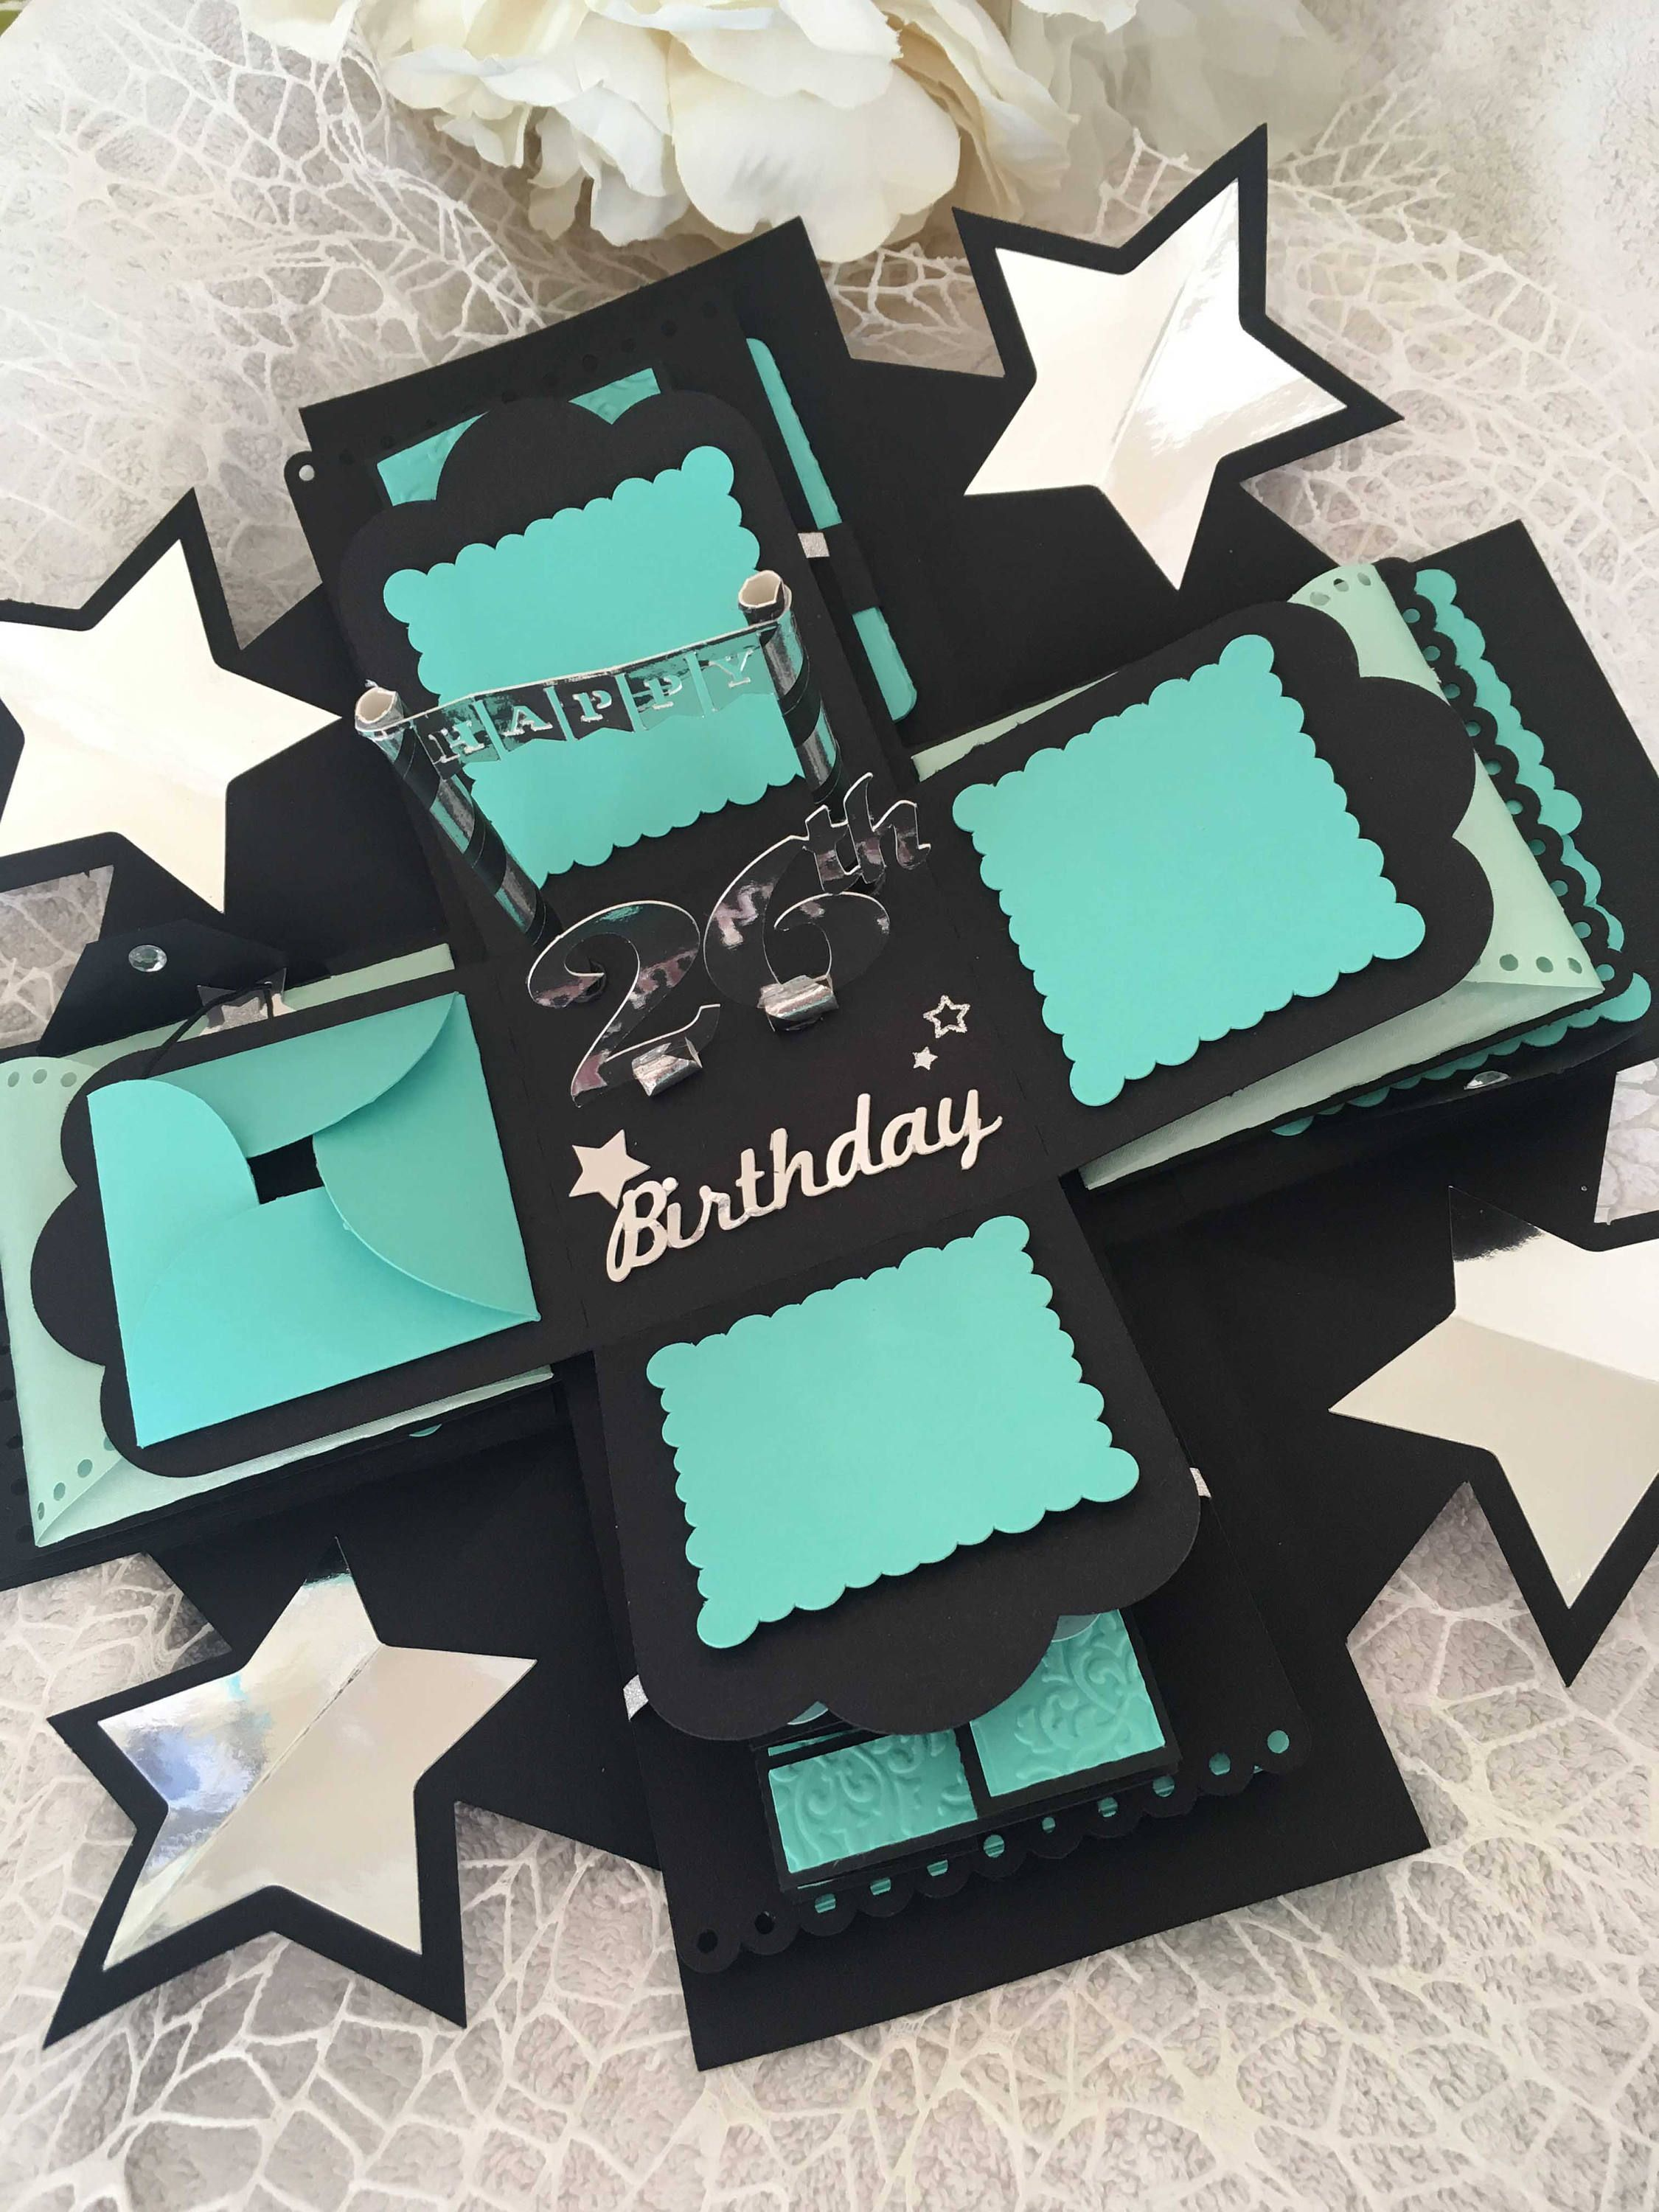 Photobox Party Happy Birthday Explosion Photo Box Birthday Photo Box